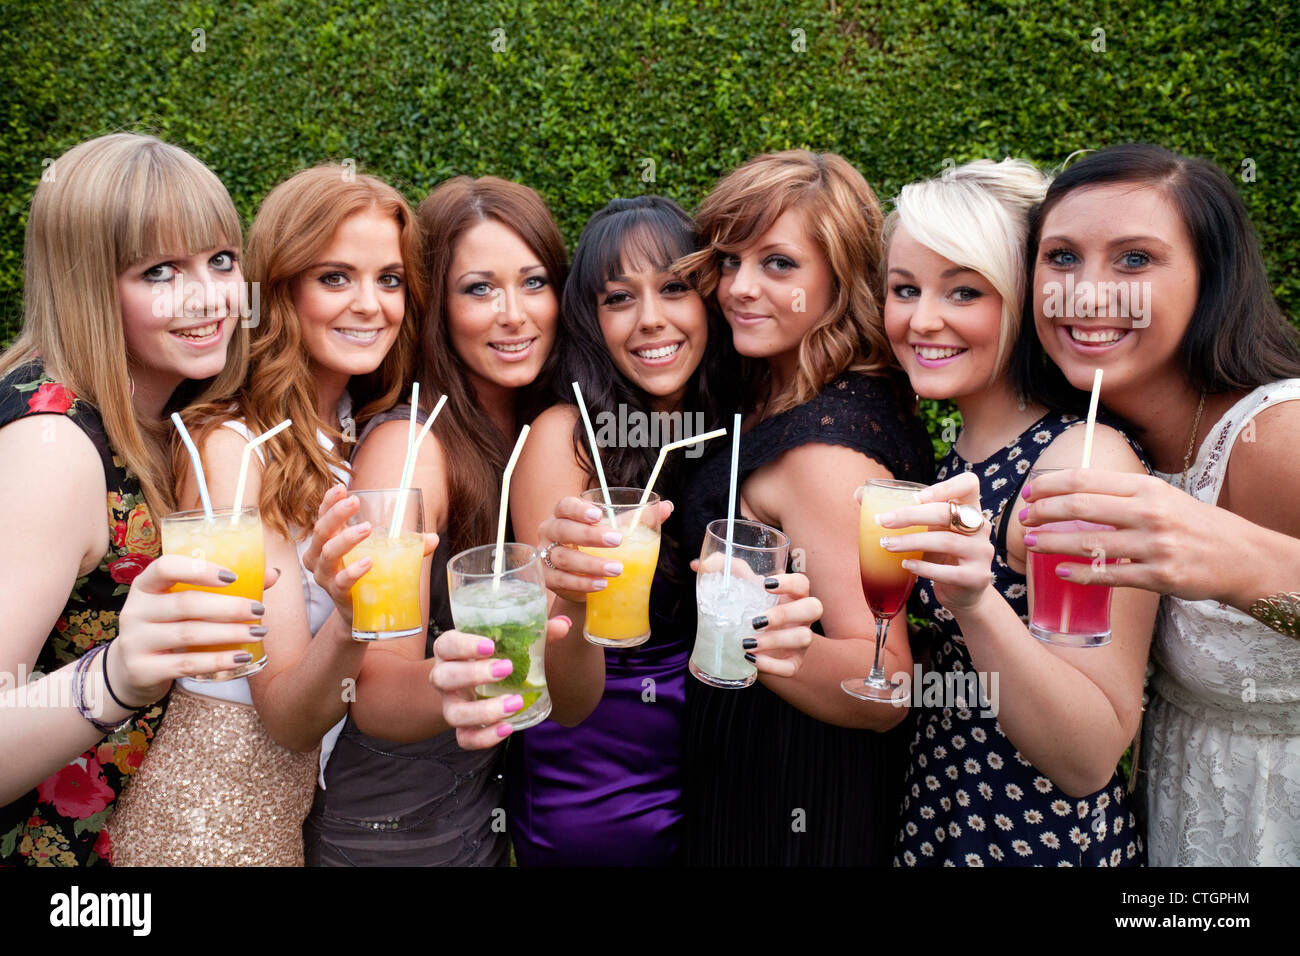 A group of seven young women enjoying drinking alcohol cocktails at a party, UK - Stock Image